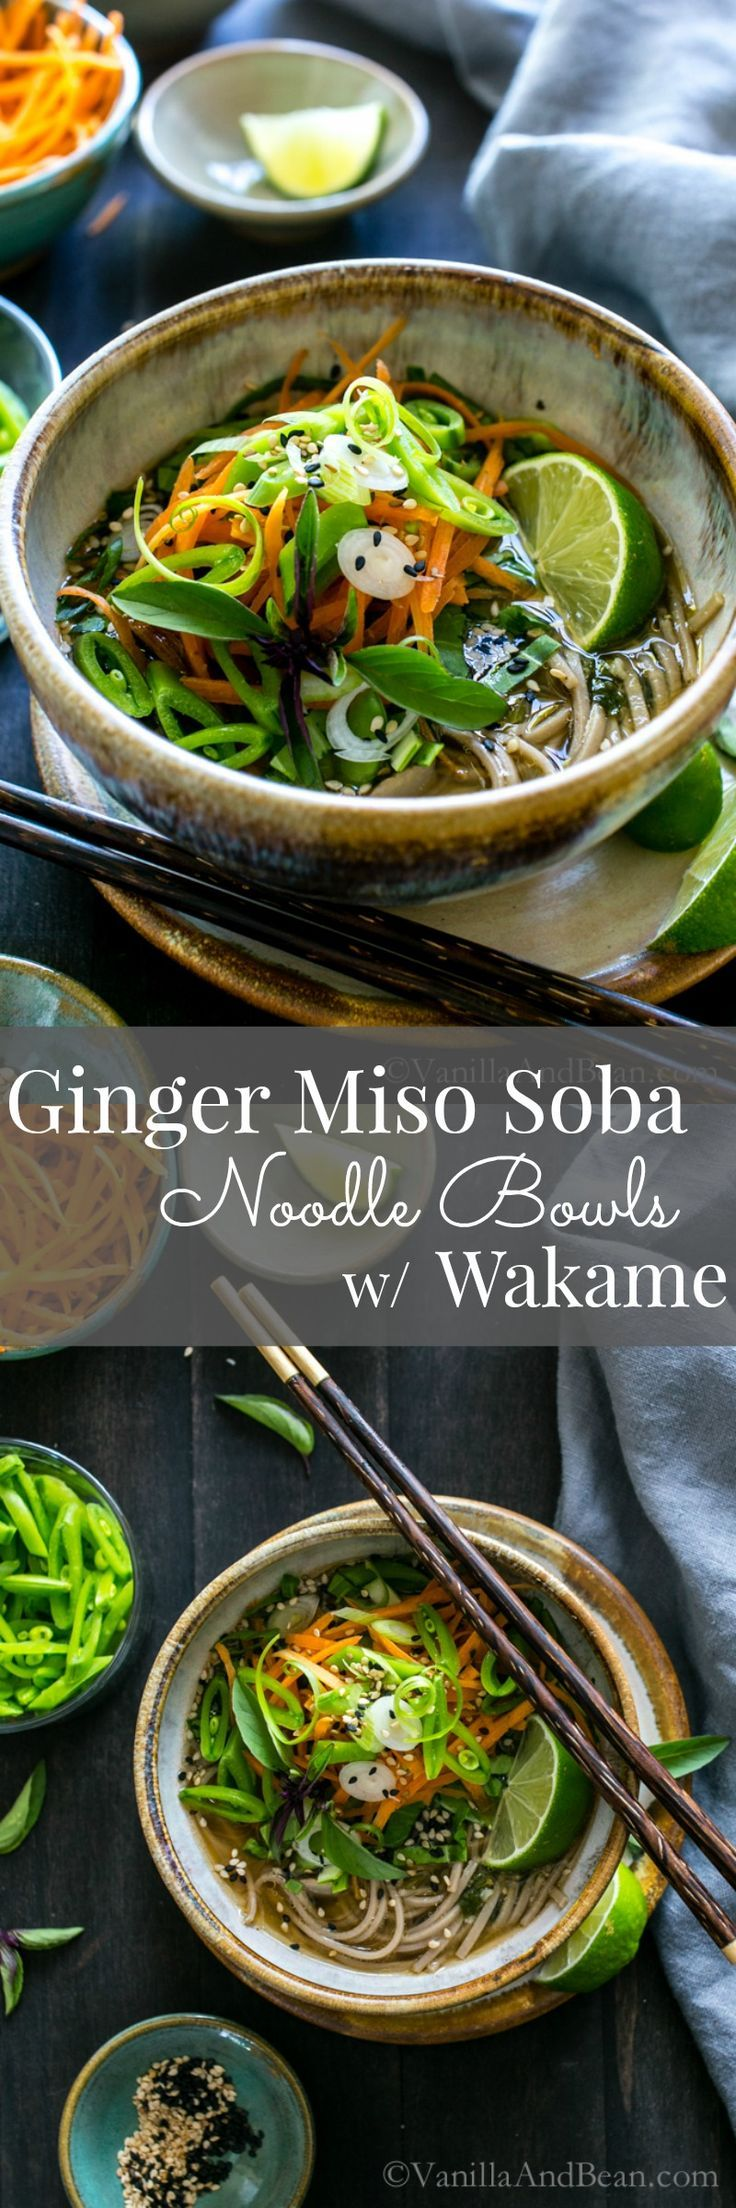 Warming and cozy, Ginger Miso Soba Noodle Bowls with Wakame are so comforting and can be seasonally adapted by switching up the veggies. For example, use cabbage instead of bok choy. Vegan + Optionally GF